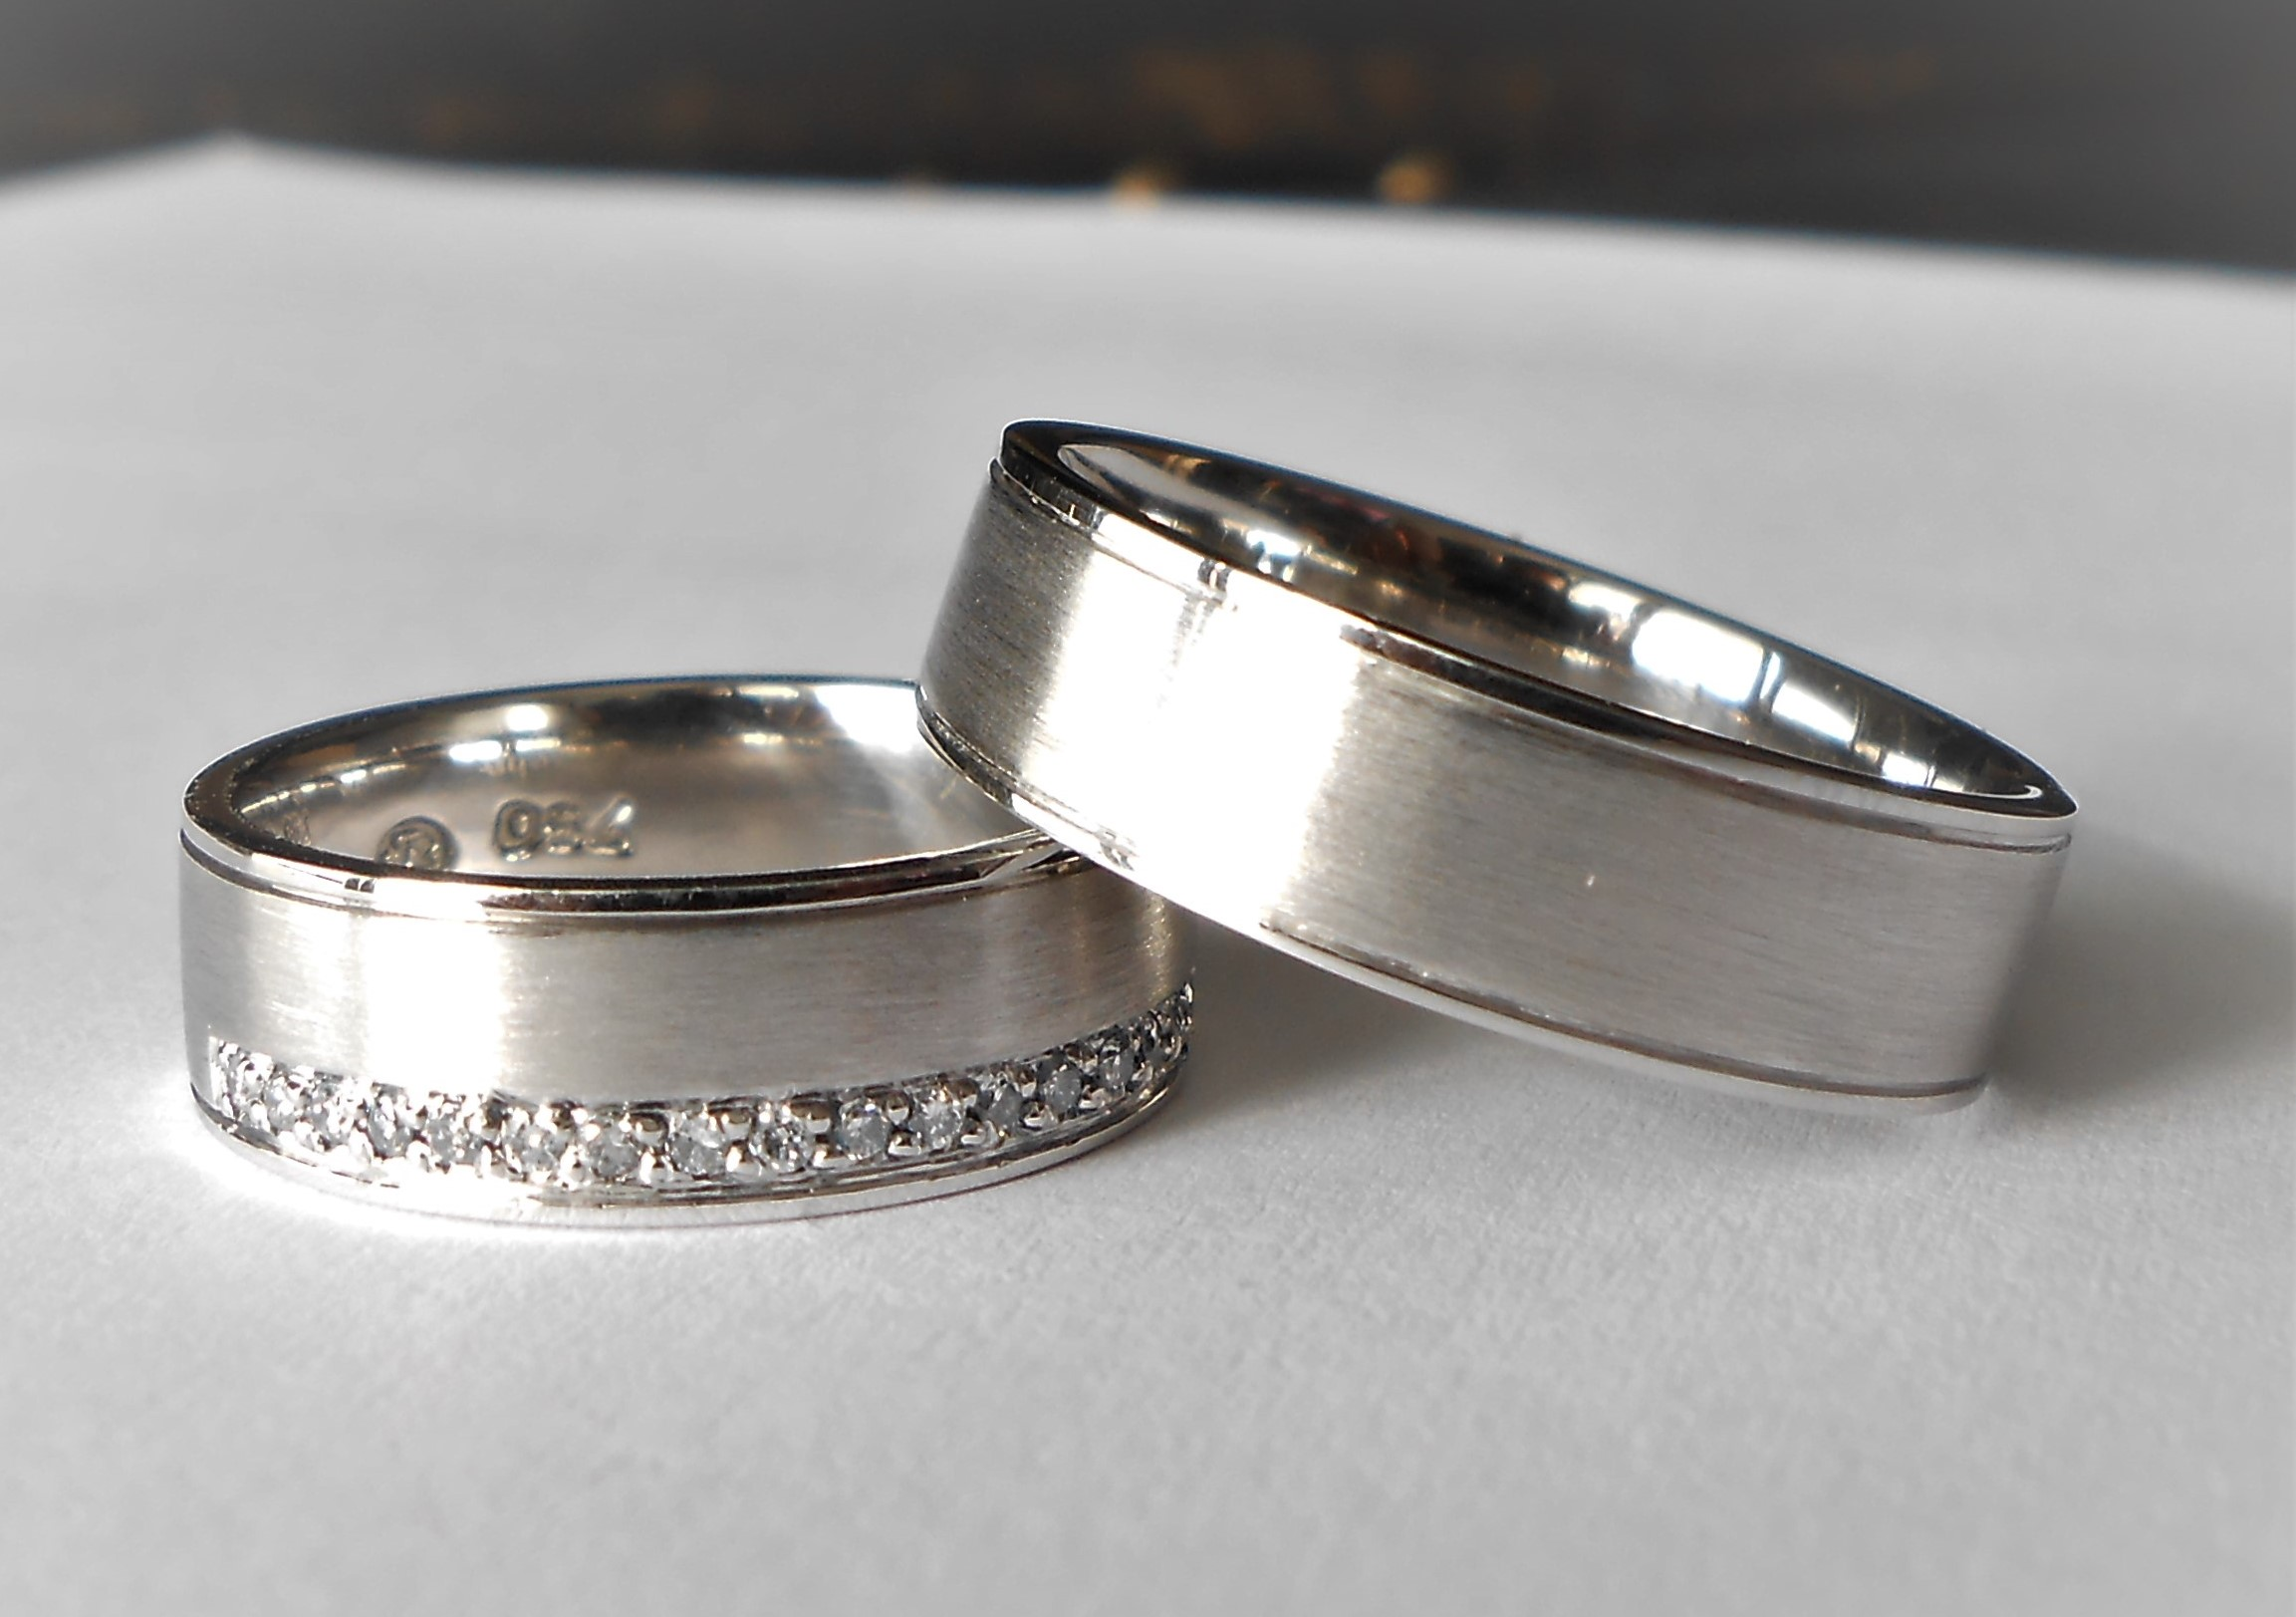 It is just an image of Couples Wedding Rings - Infacet Jewellers Cape Town South Africa